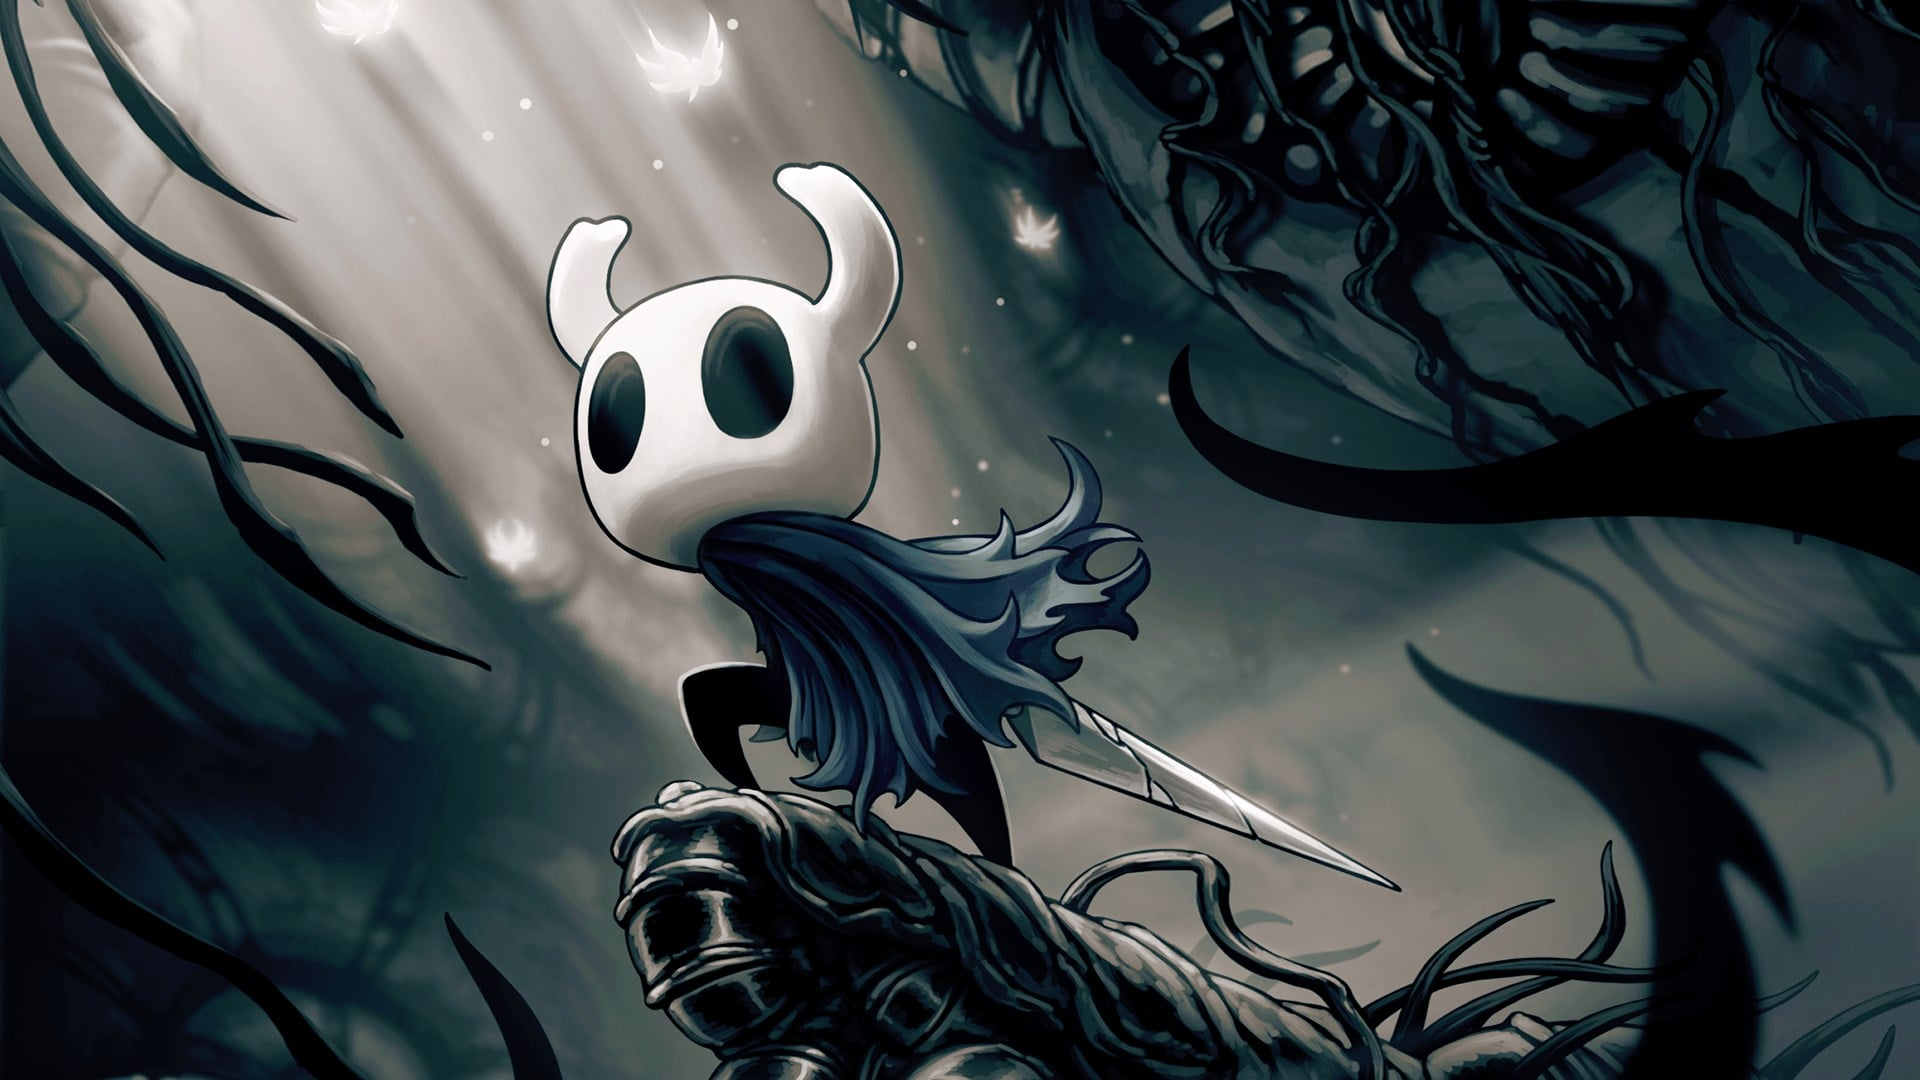 hollow knight steam guide 10